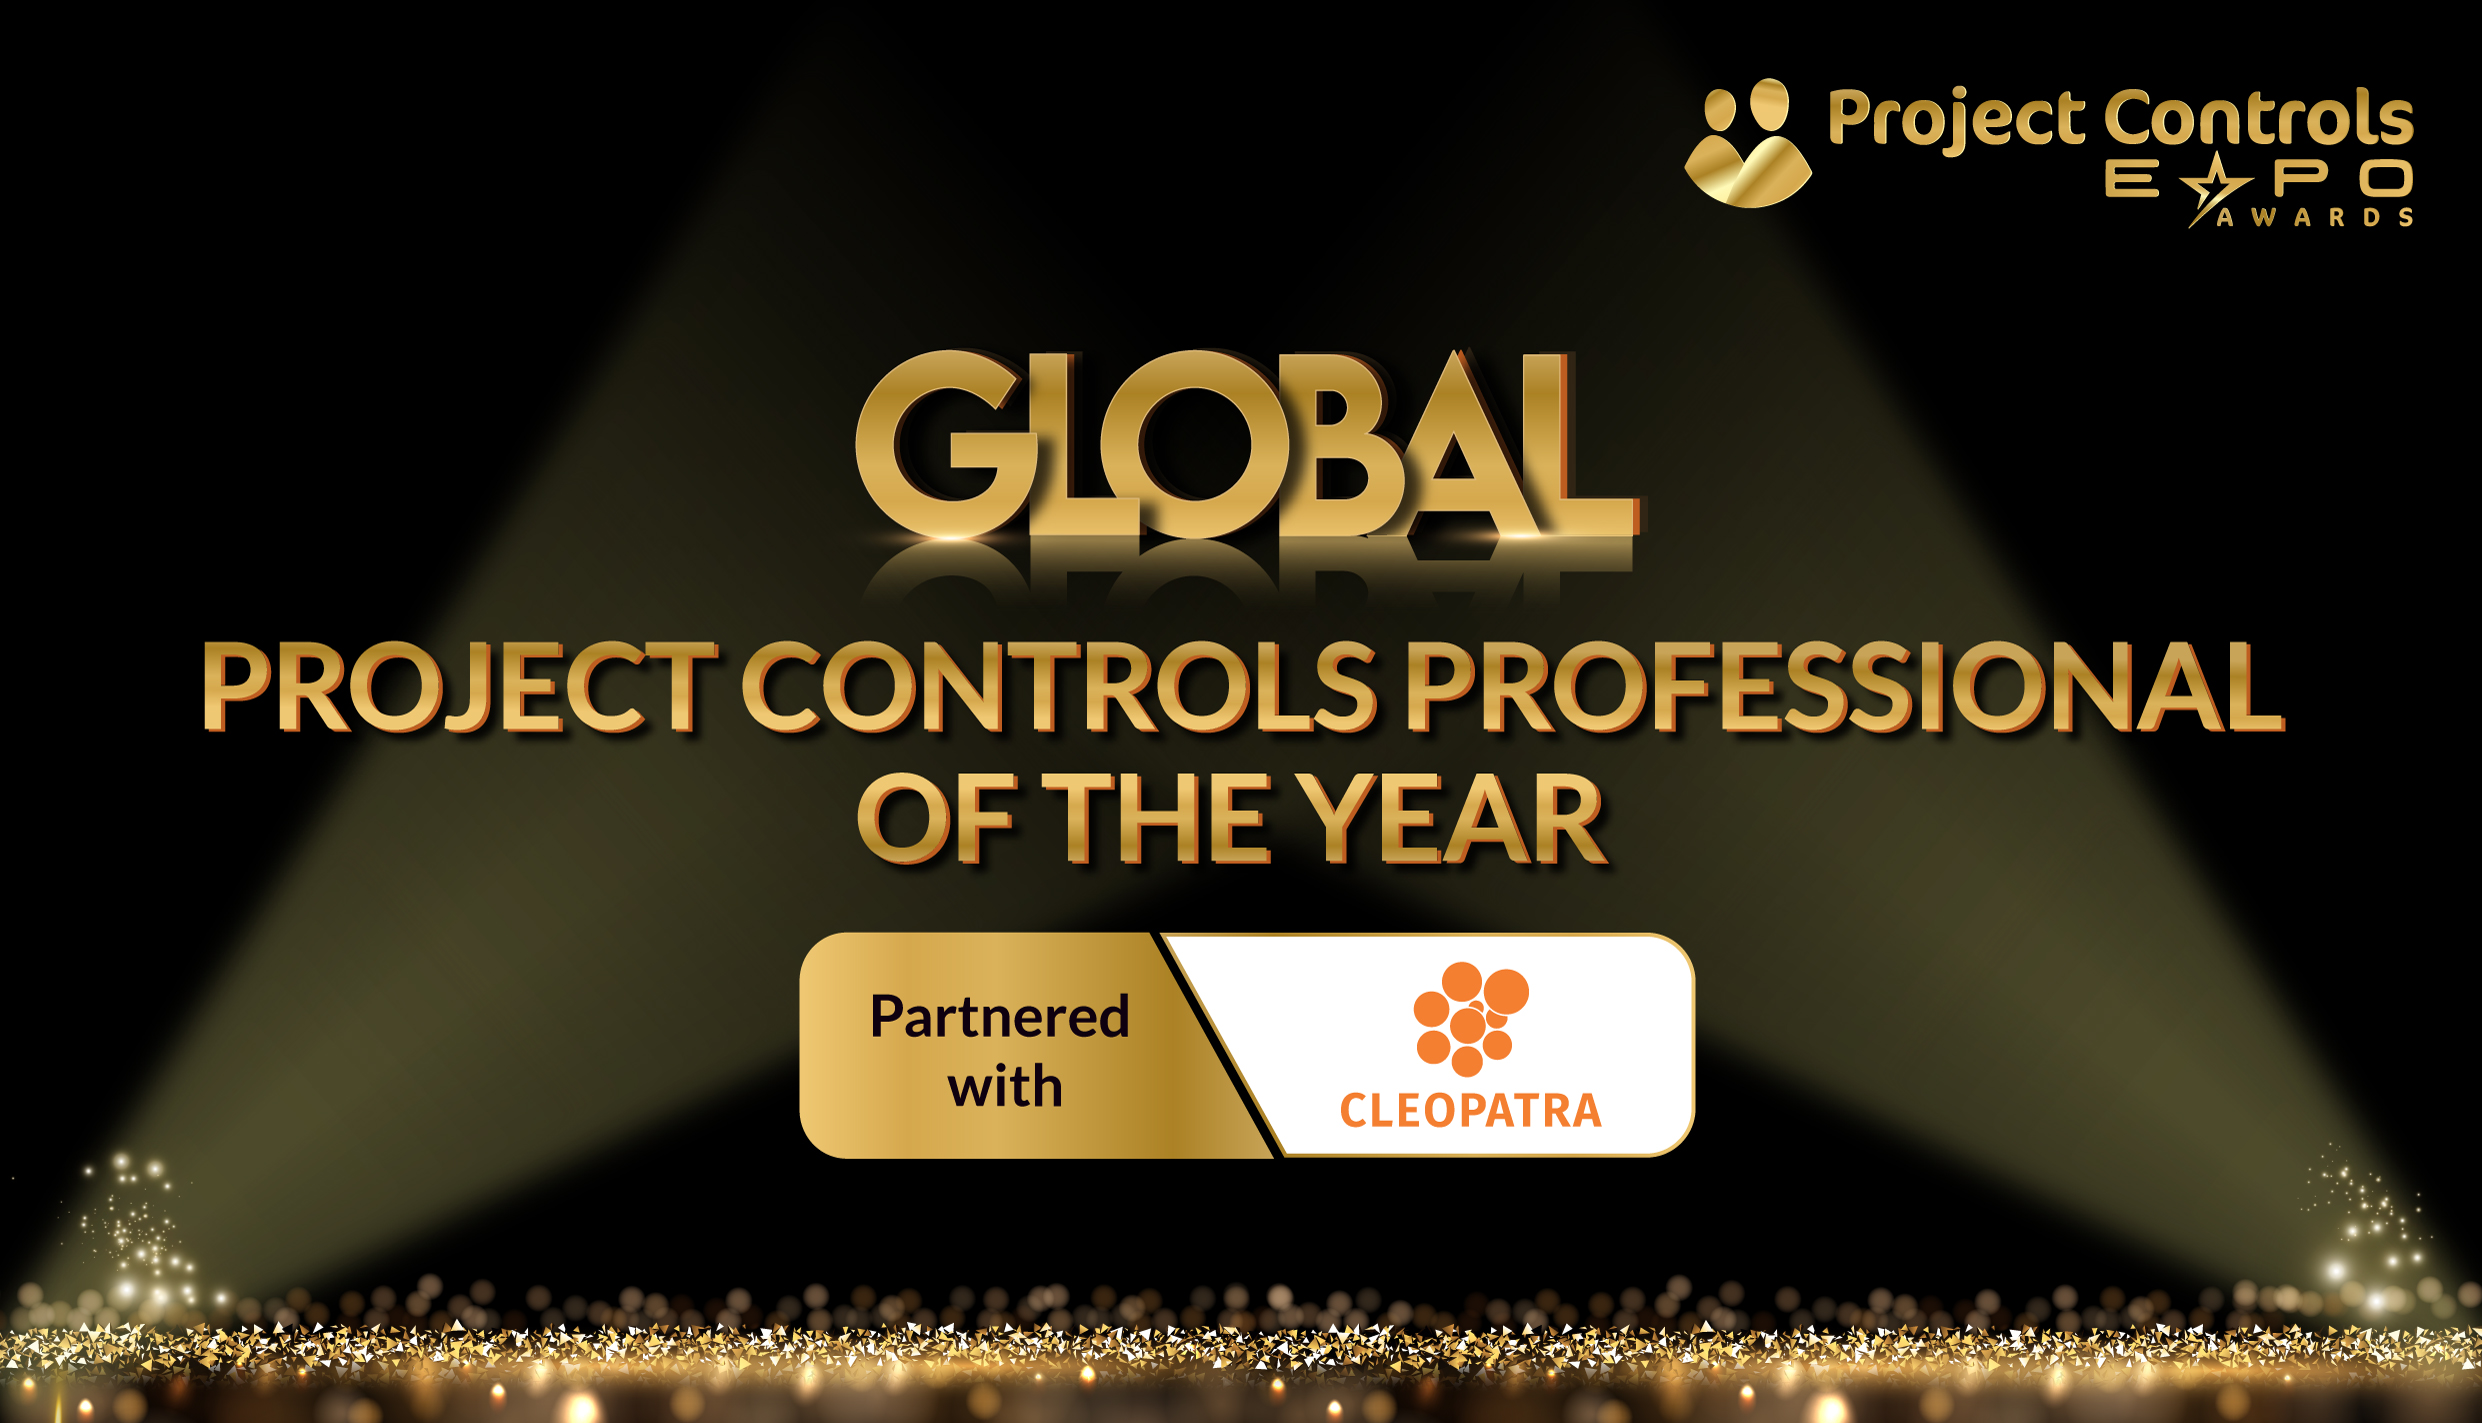 Cleopatra Enterprise partner of the Project Controls Expo Awards 2021